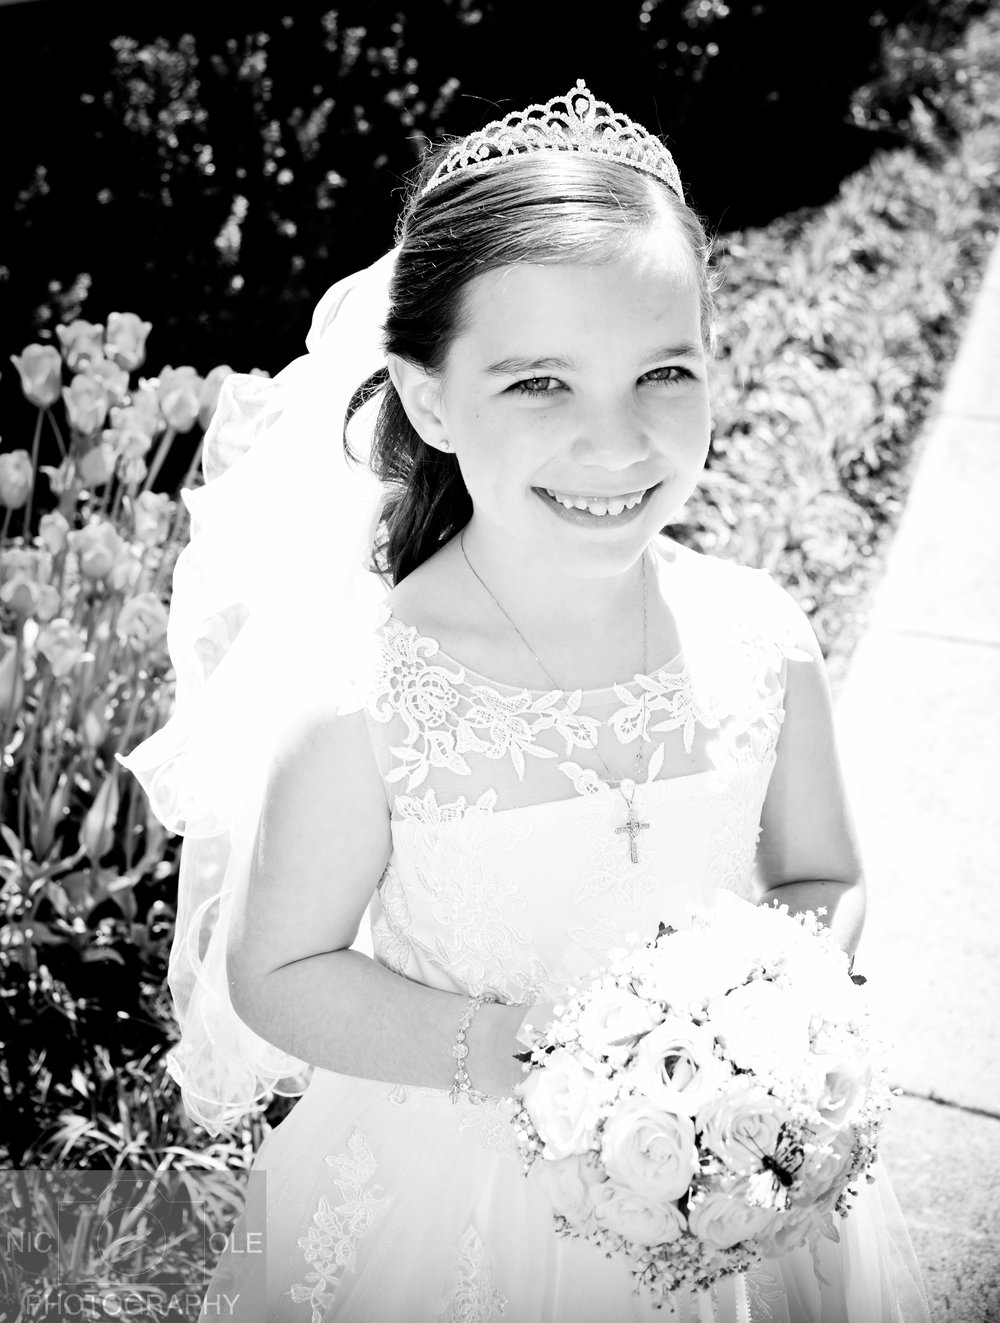 Ava's Communion 2017-NIC-OLE Photography-7.jpg